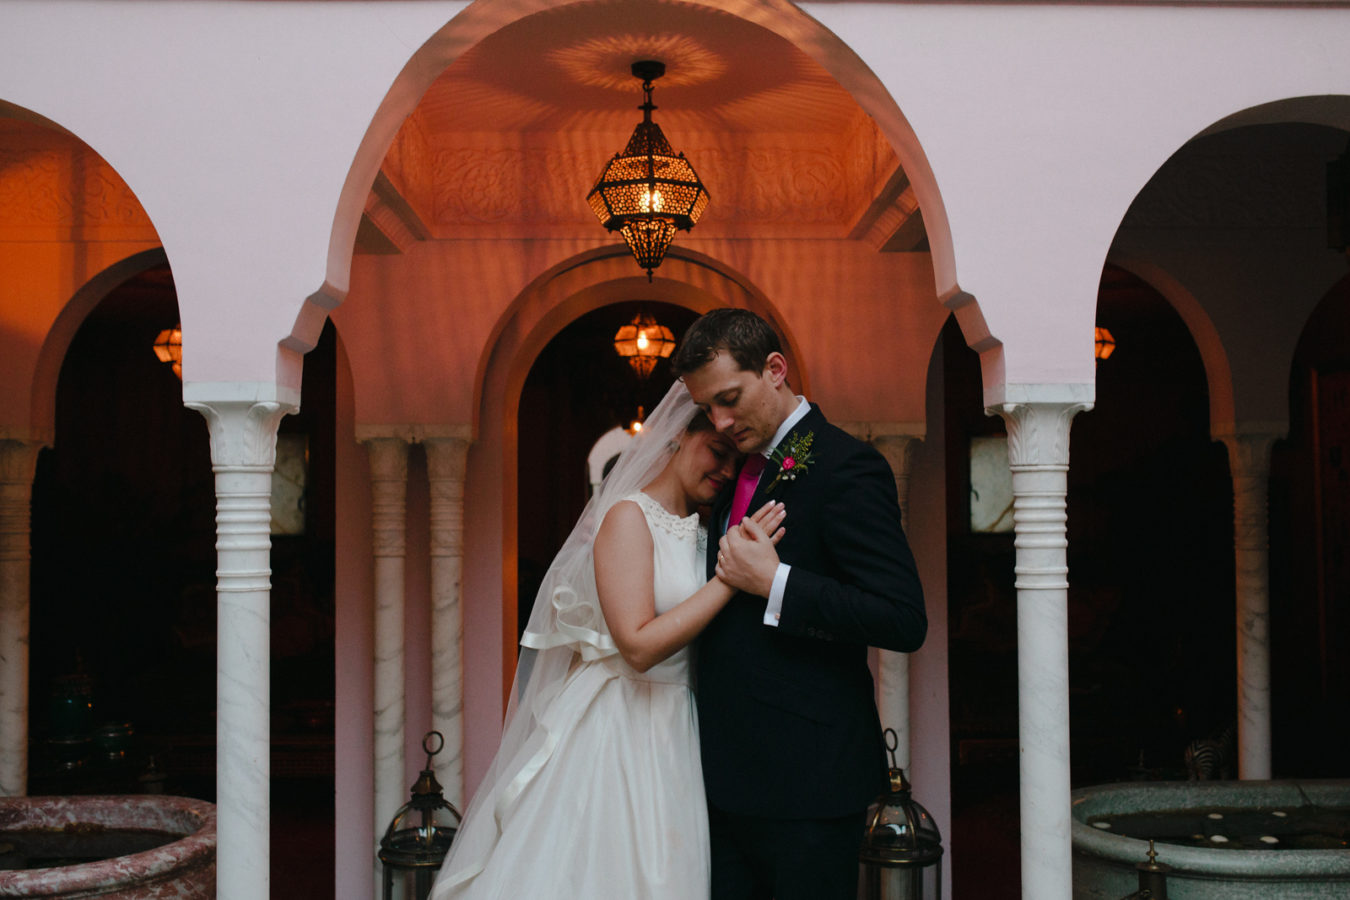 A natural photo of a bride and groom in the moroccan court yard at Port Lympne